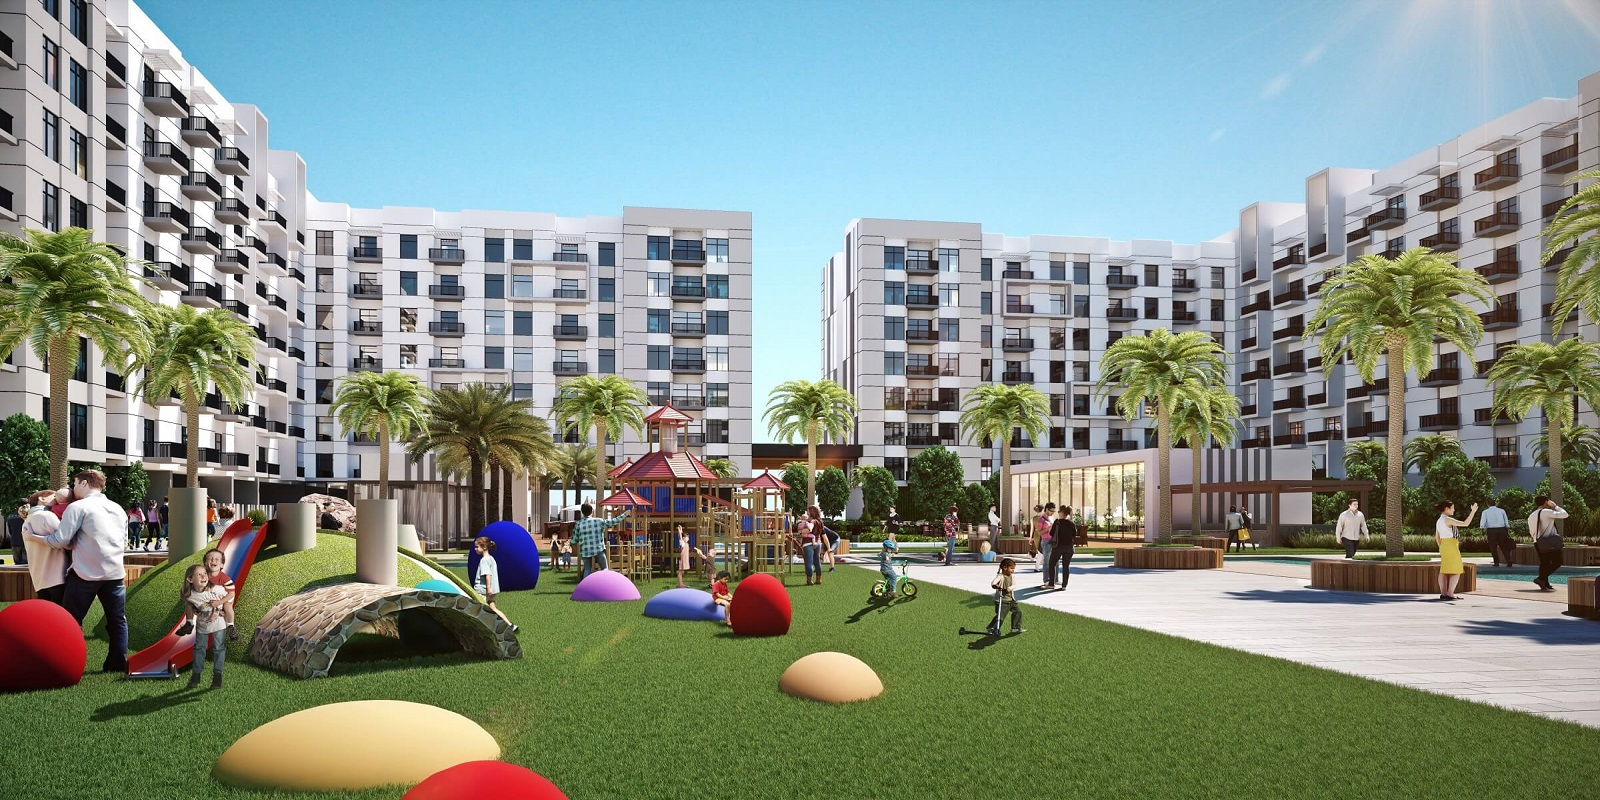 danube lawnz amenities features8